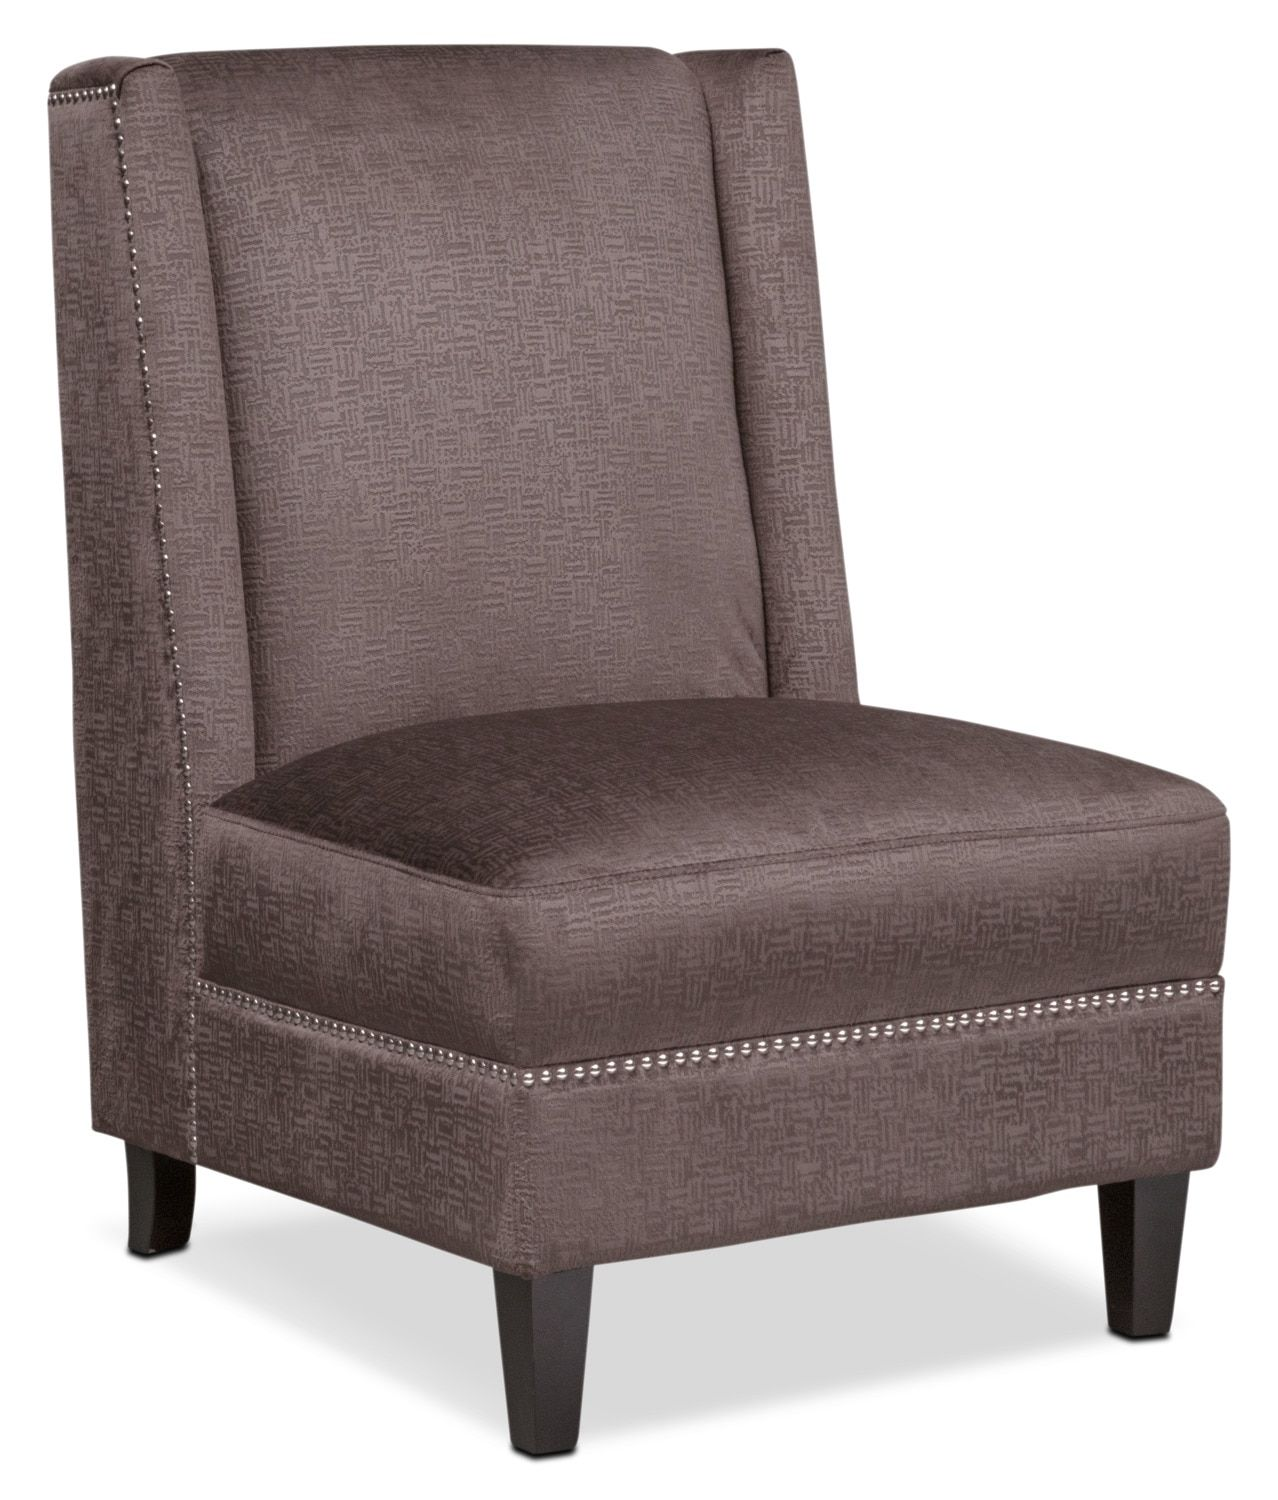 Remarkable Roberto Accent Chair Products Accent Chairs Chair Grey Ibusinesslaw Wood Chair Design Ideas Ibusinesslaworg